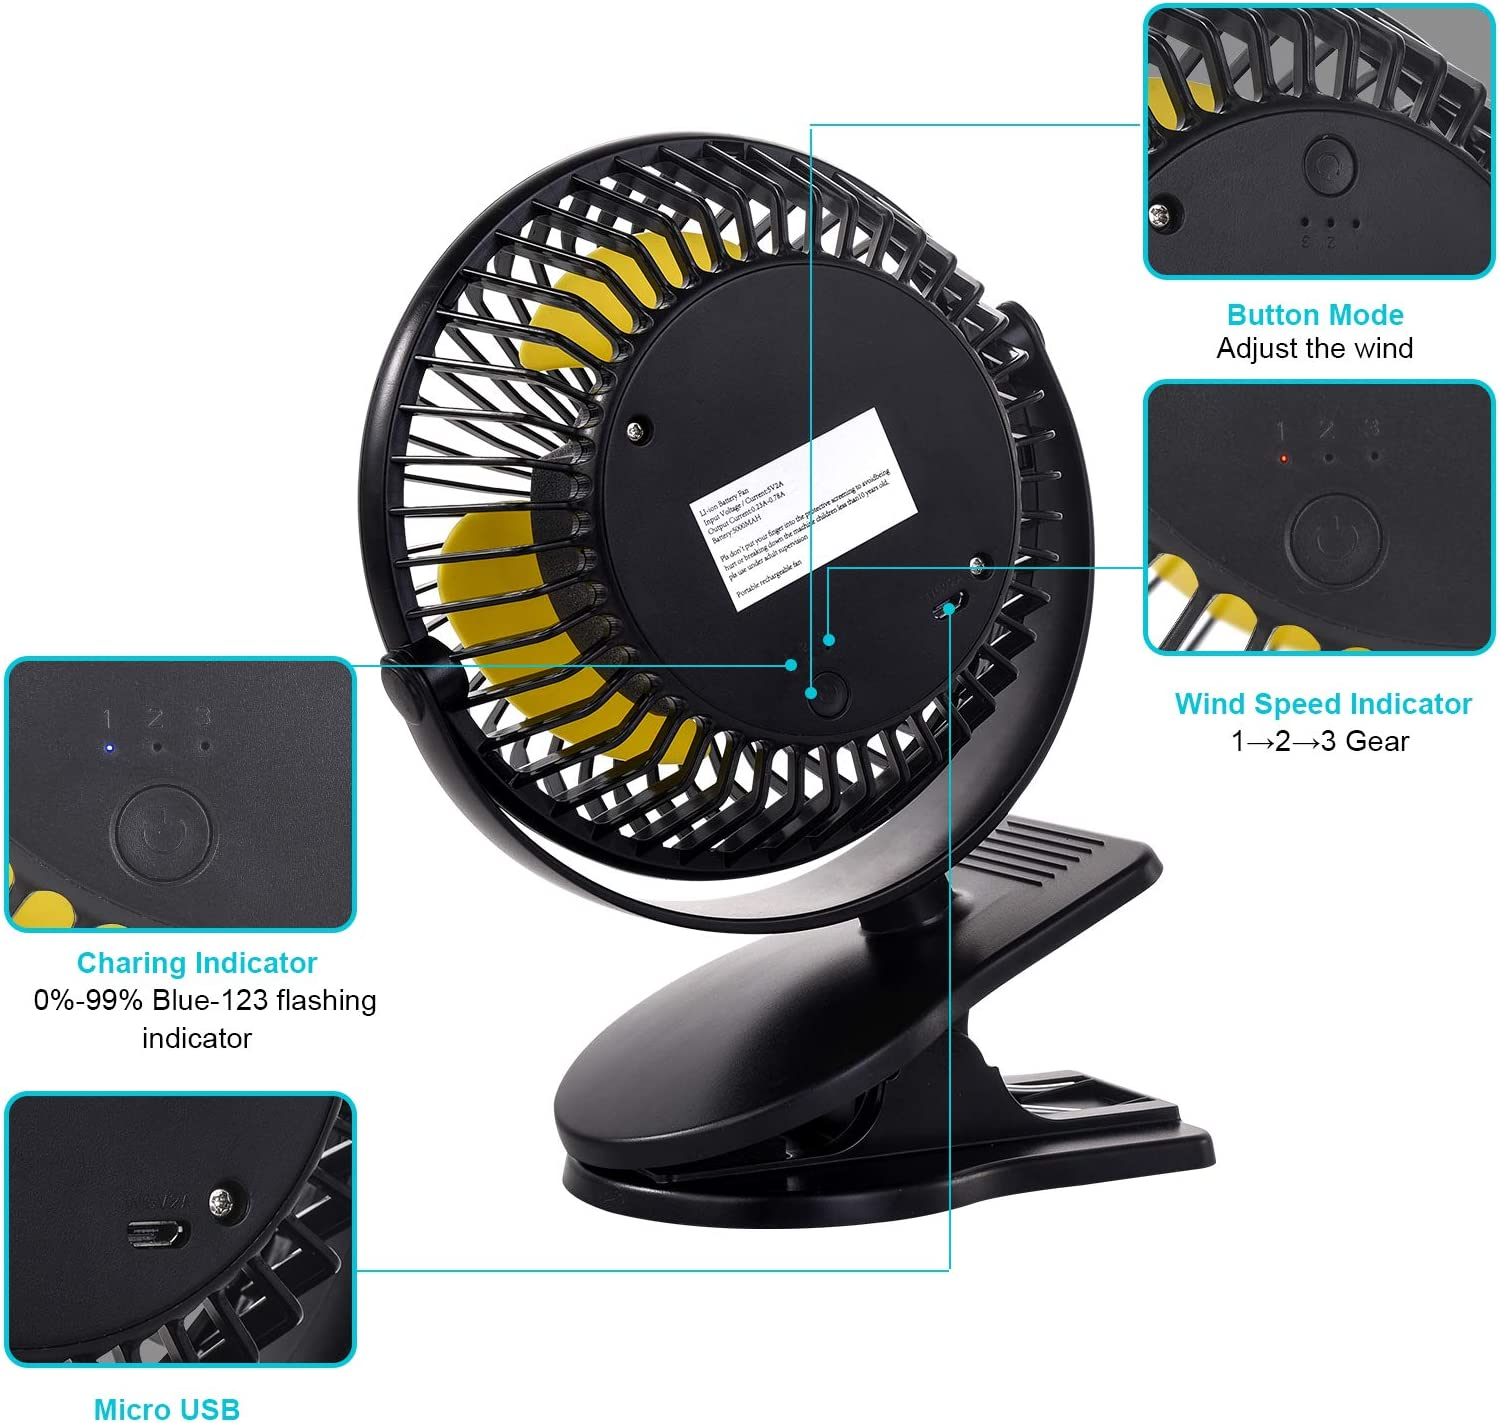 Lipop 10000mAh USB Desk Fan, Portable Rechargeable Battery Operated Clip-on Table Fan , 3 Speeds, 360° Rotation,Strong Wind,Quiet Operation,for Home Office Car Outdoor Travel (Black)